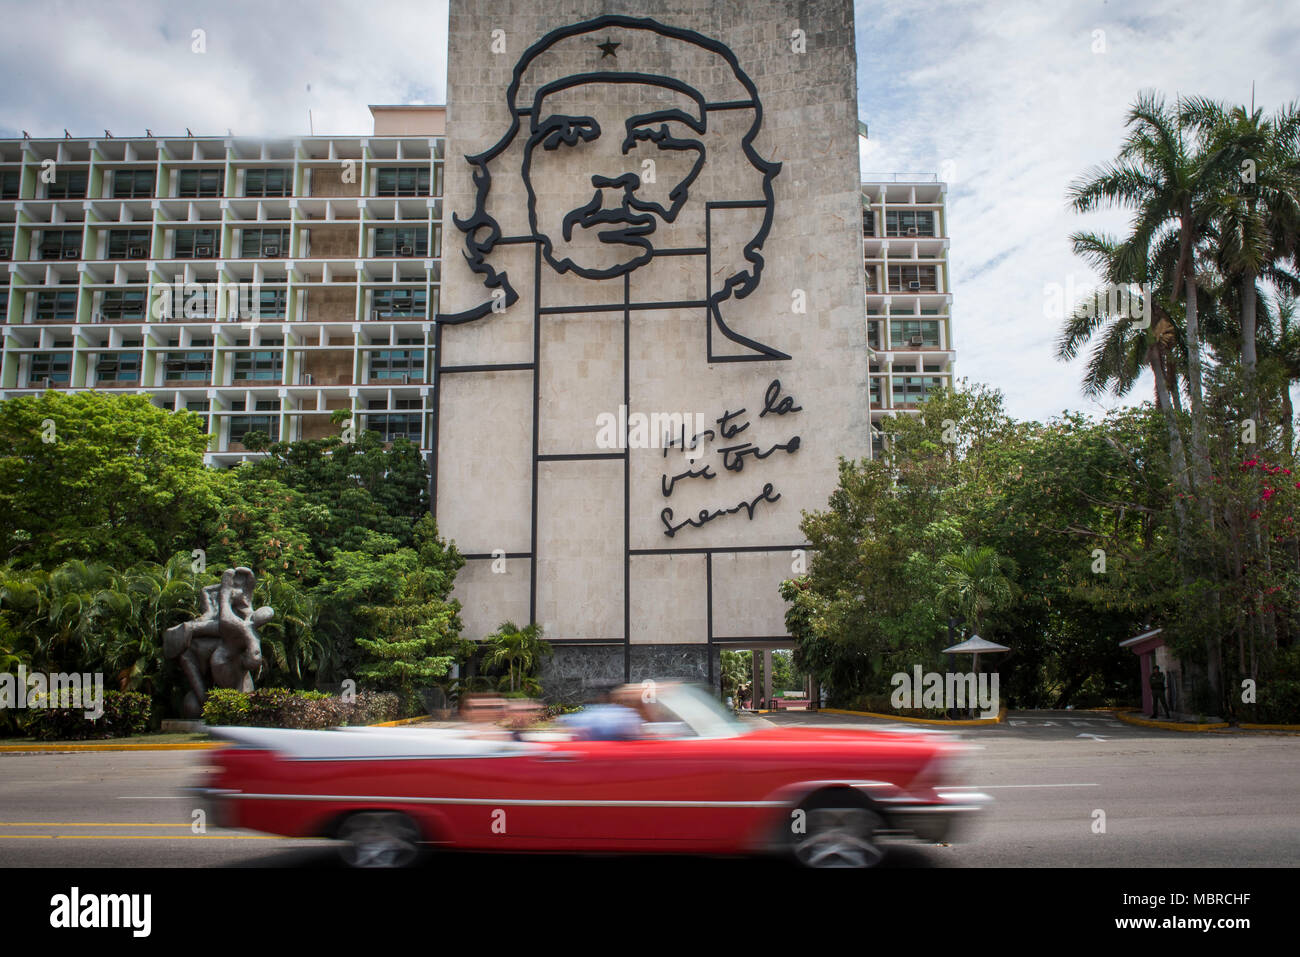 Classic American car drives past a building with a Che Guevara mural on the side in Revolution Square, Havana, Cuba. - Stock Image